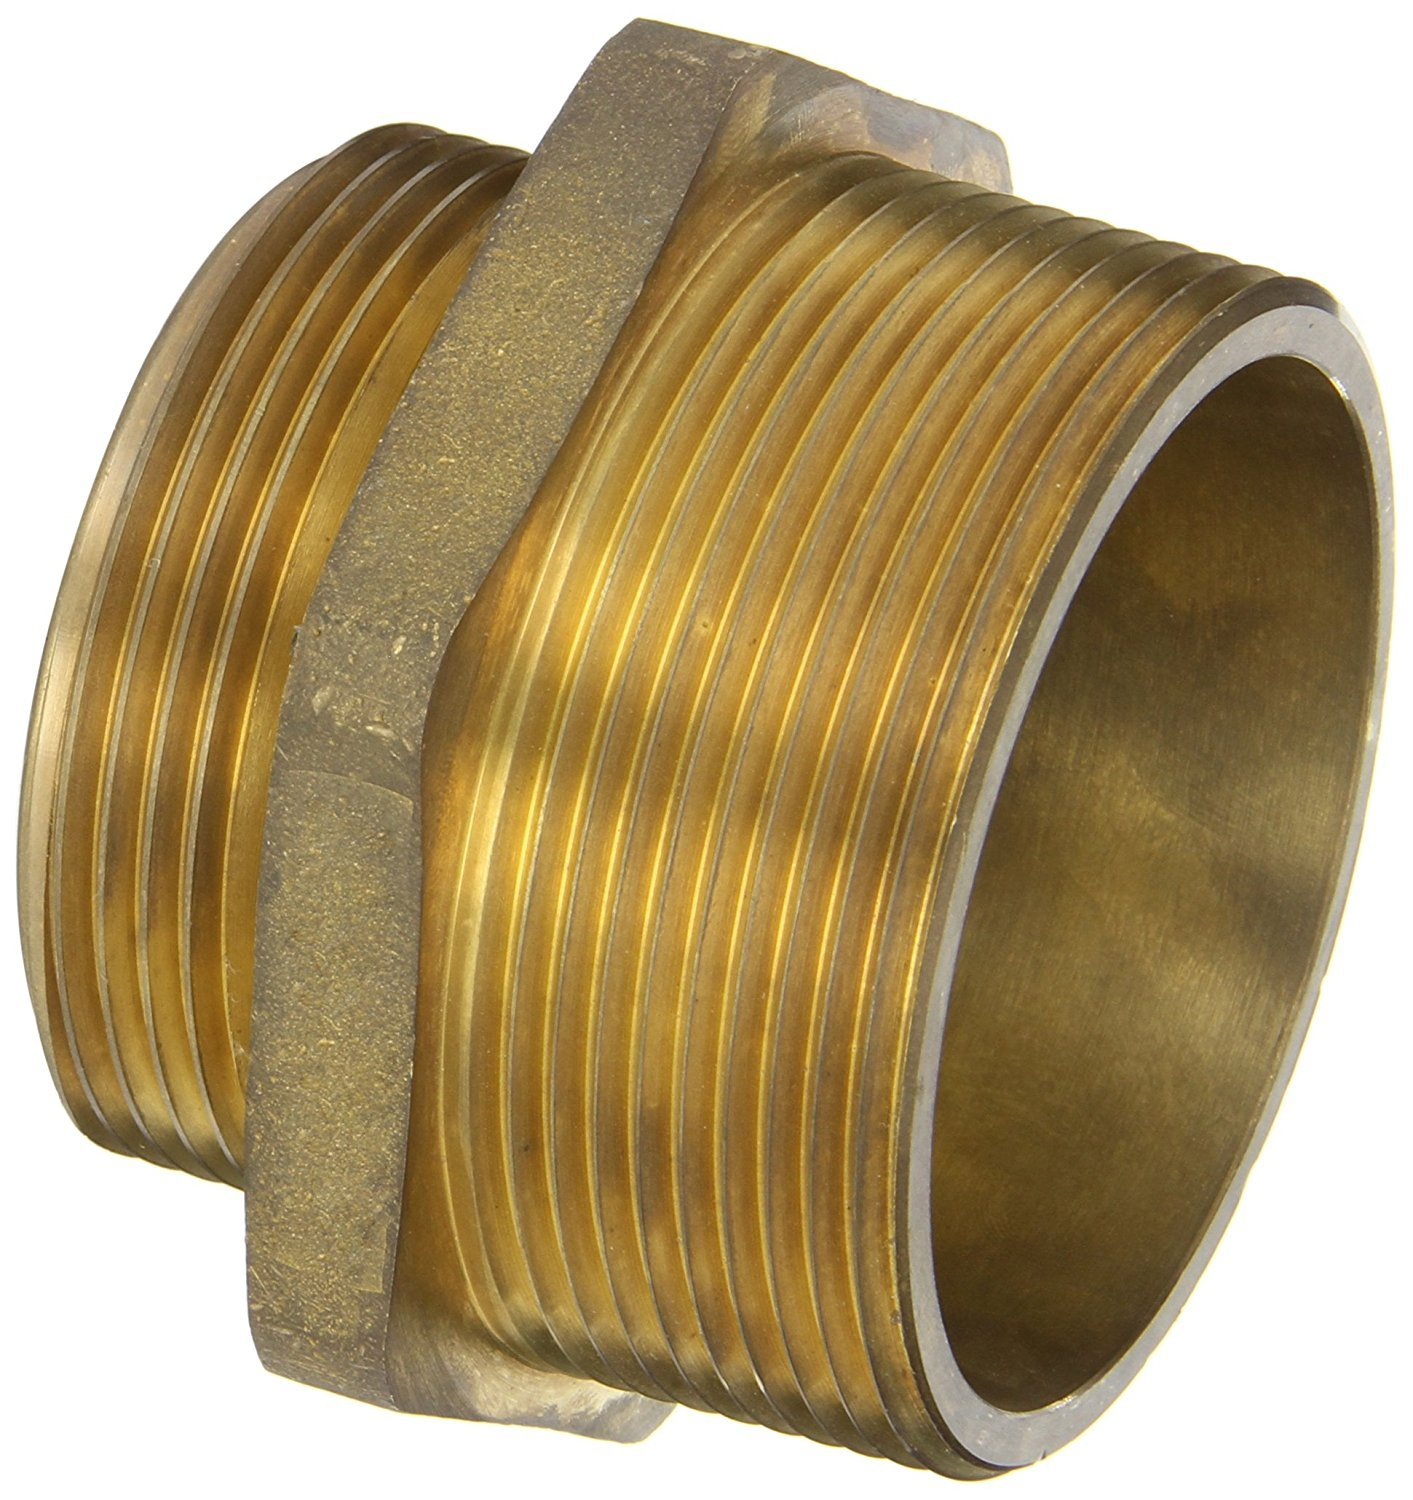 Campbell Fittings DMH3025F Double Male Hex Nipple, 3'' ID, Brass, 3'' NPT x 2-1/2'' NST